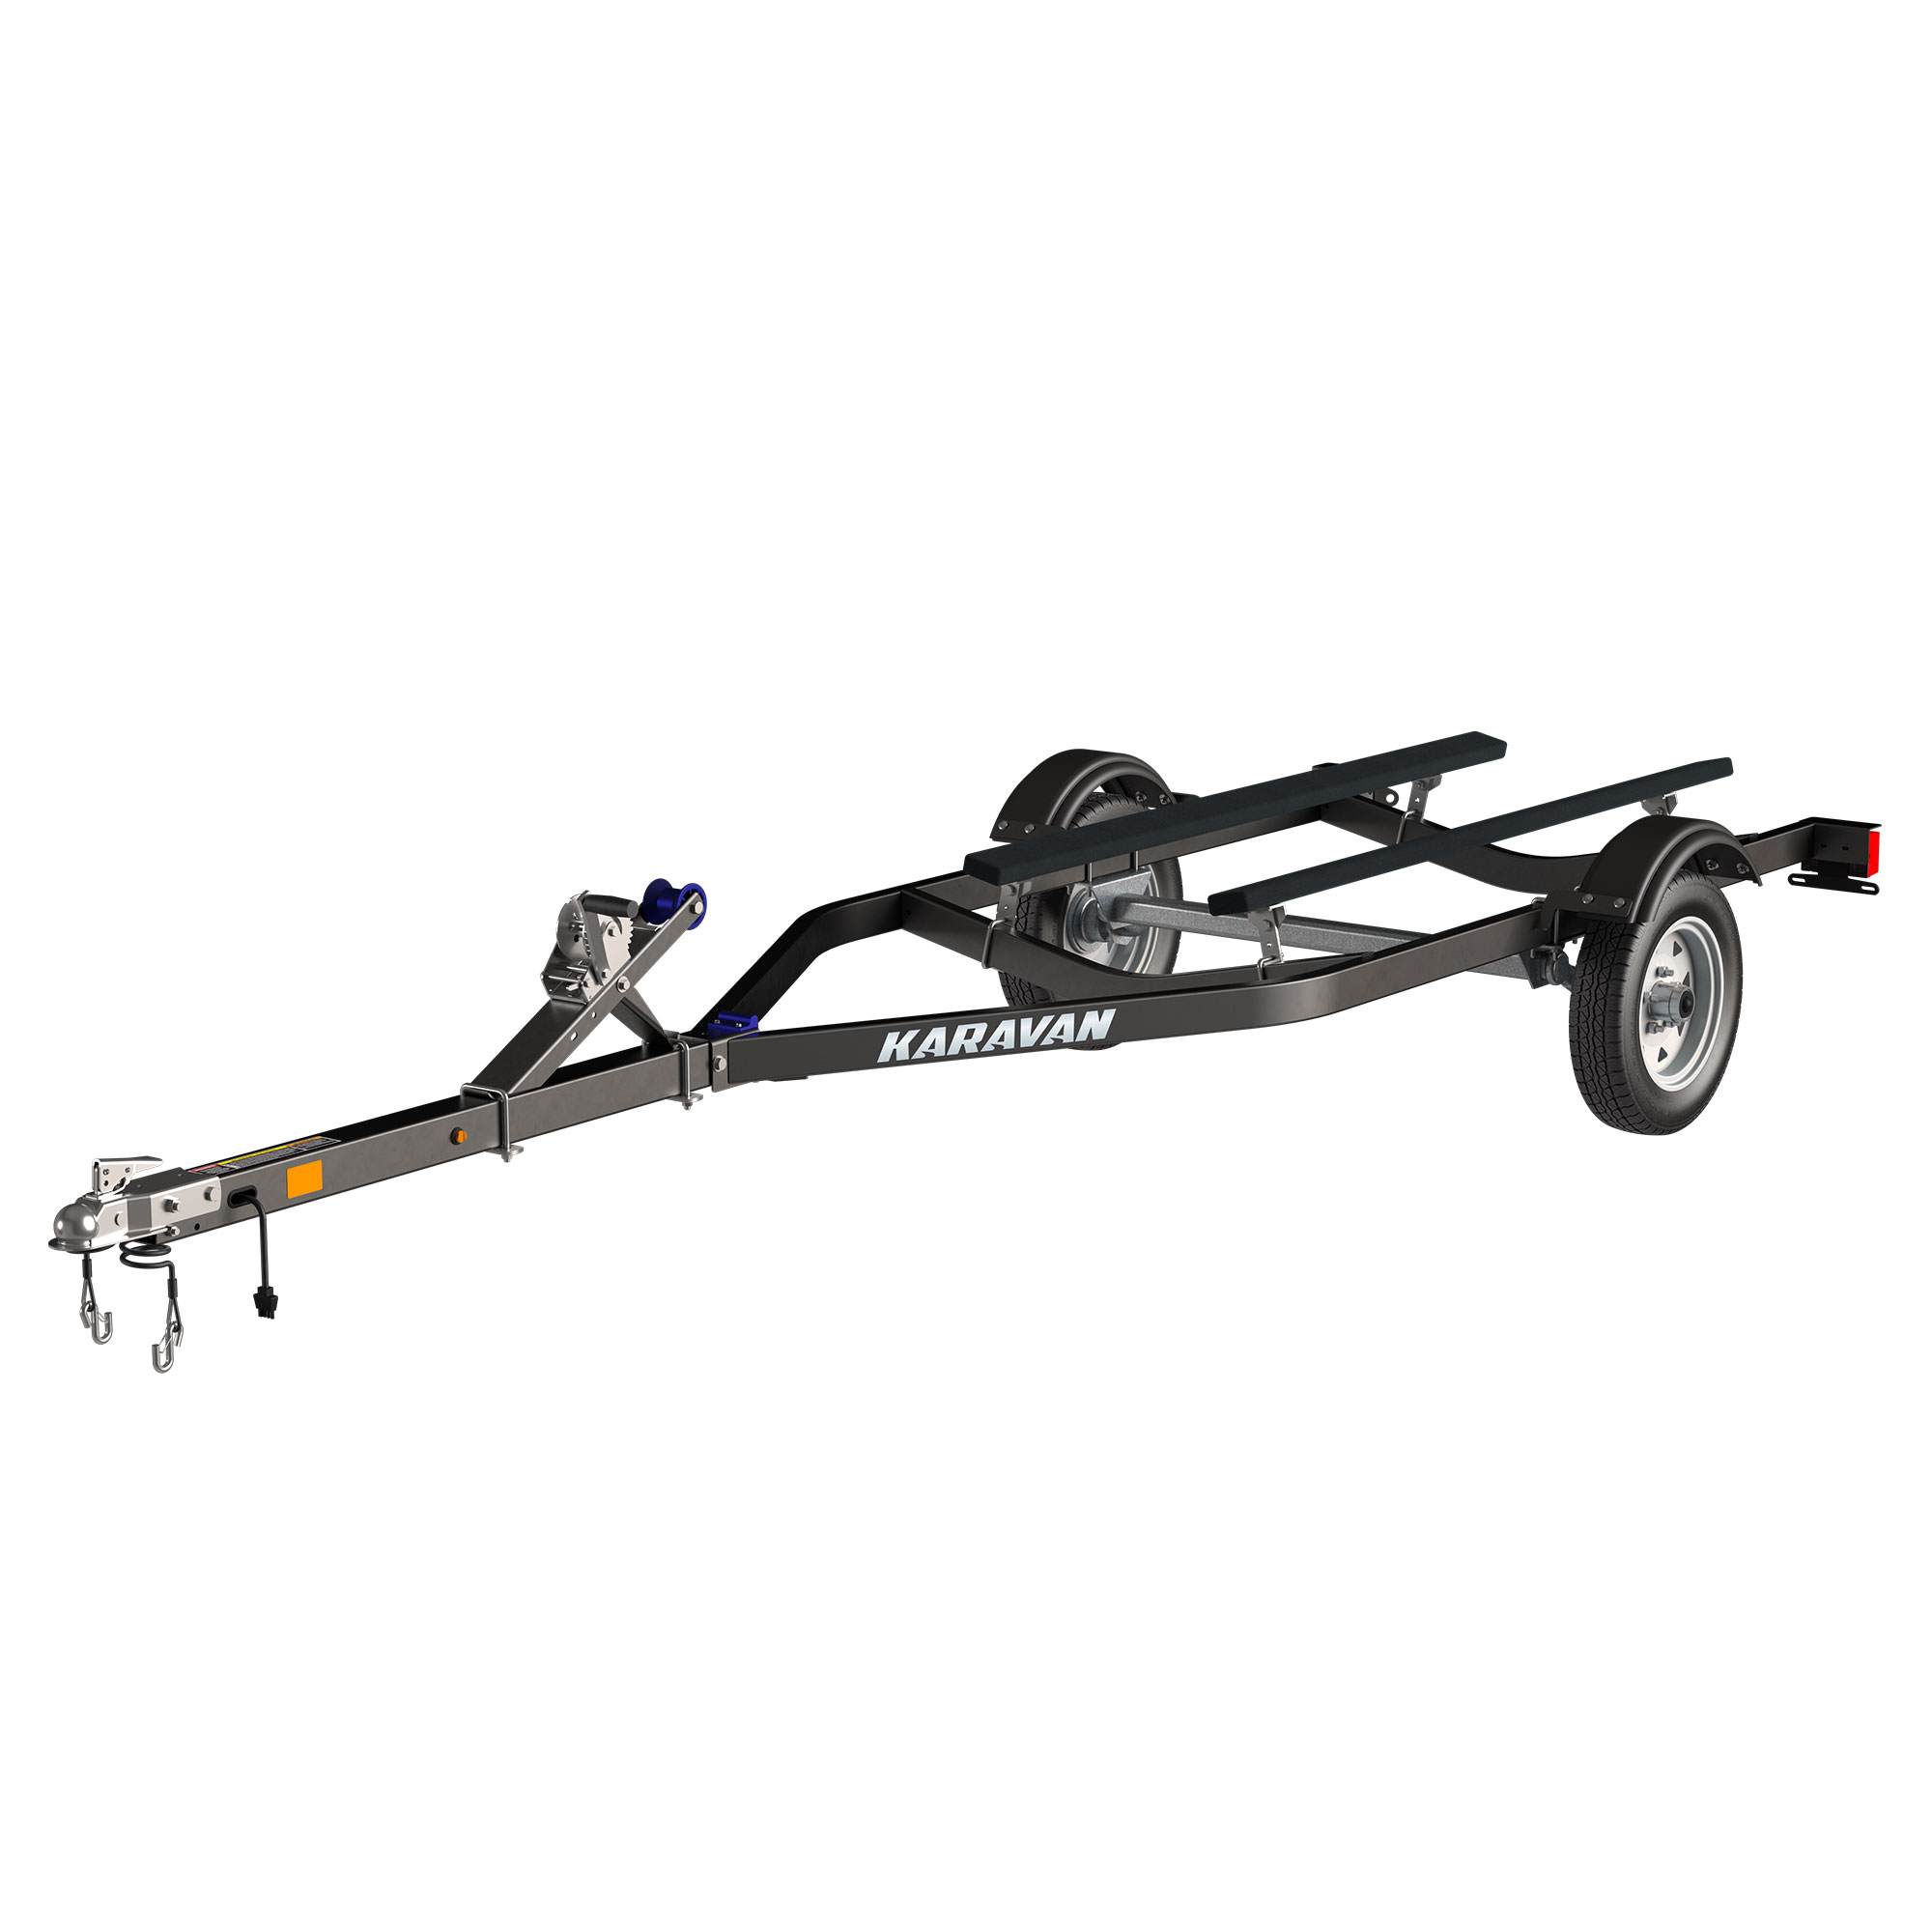 Single Watercraft Low Profile Steel Trailer